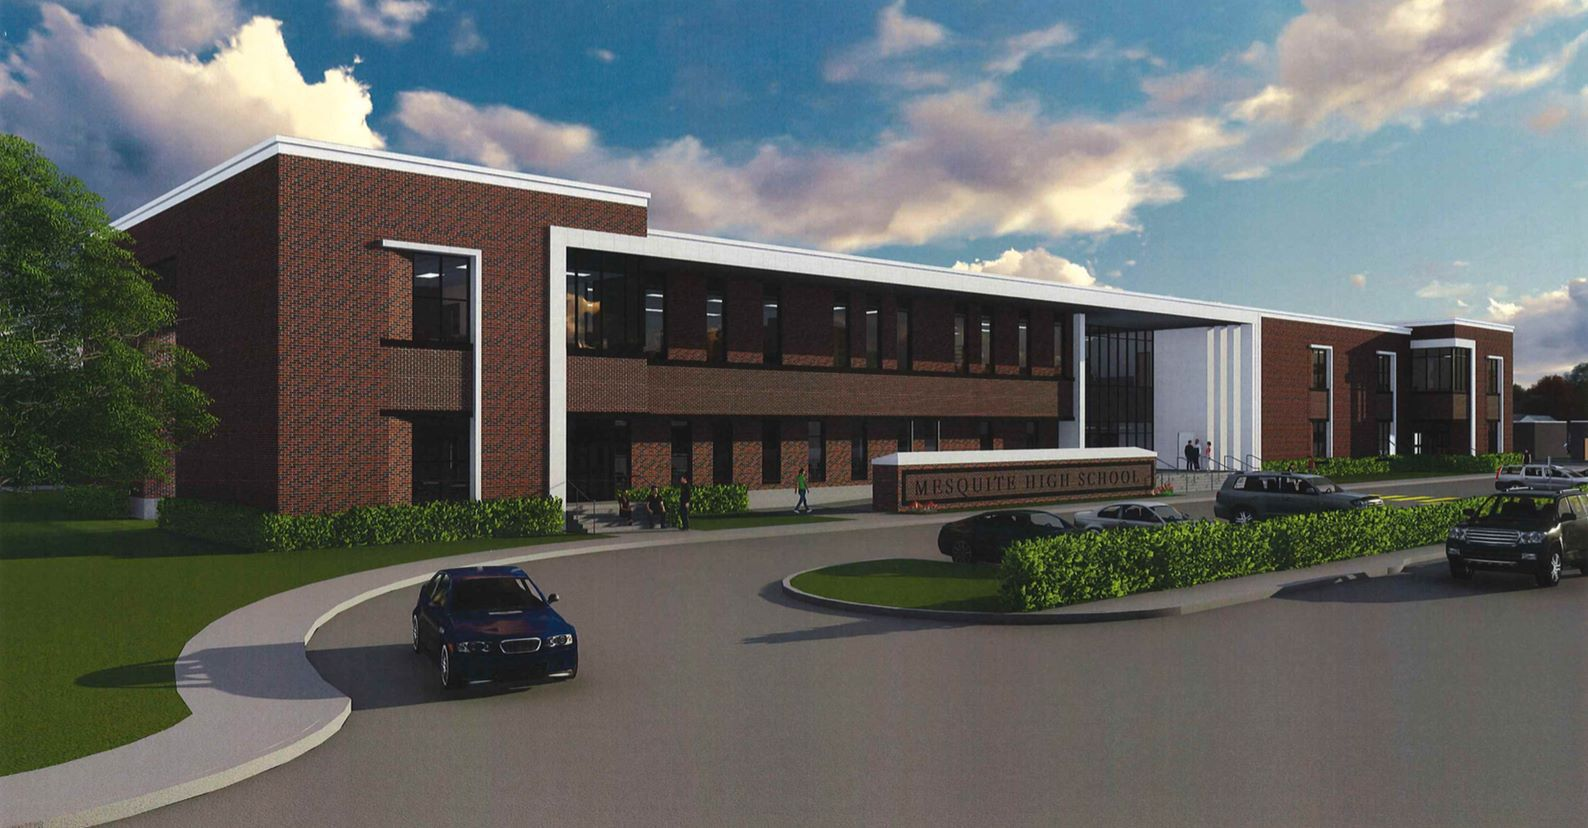 Mesquite High School will undergo an $18 million renovation starting in March.